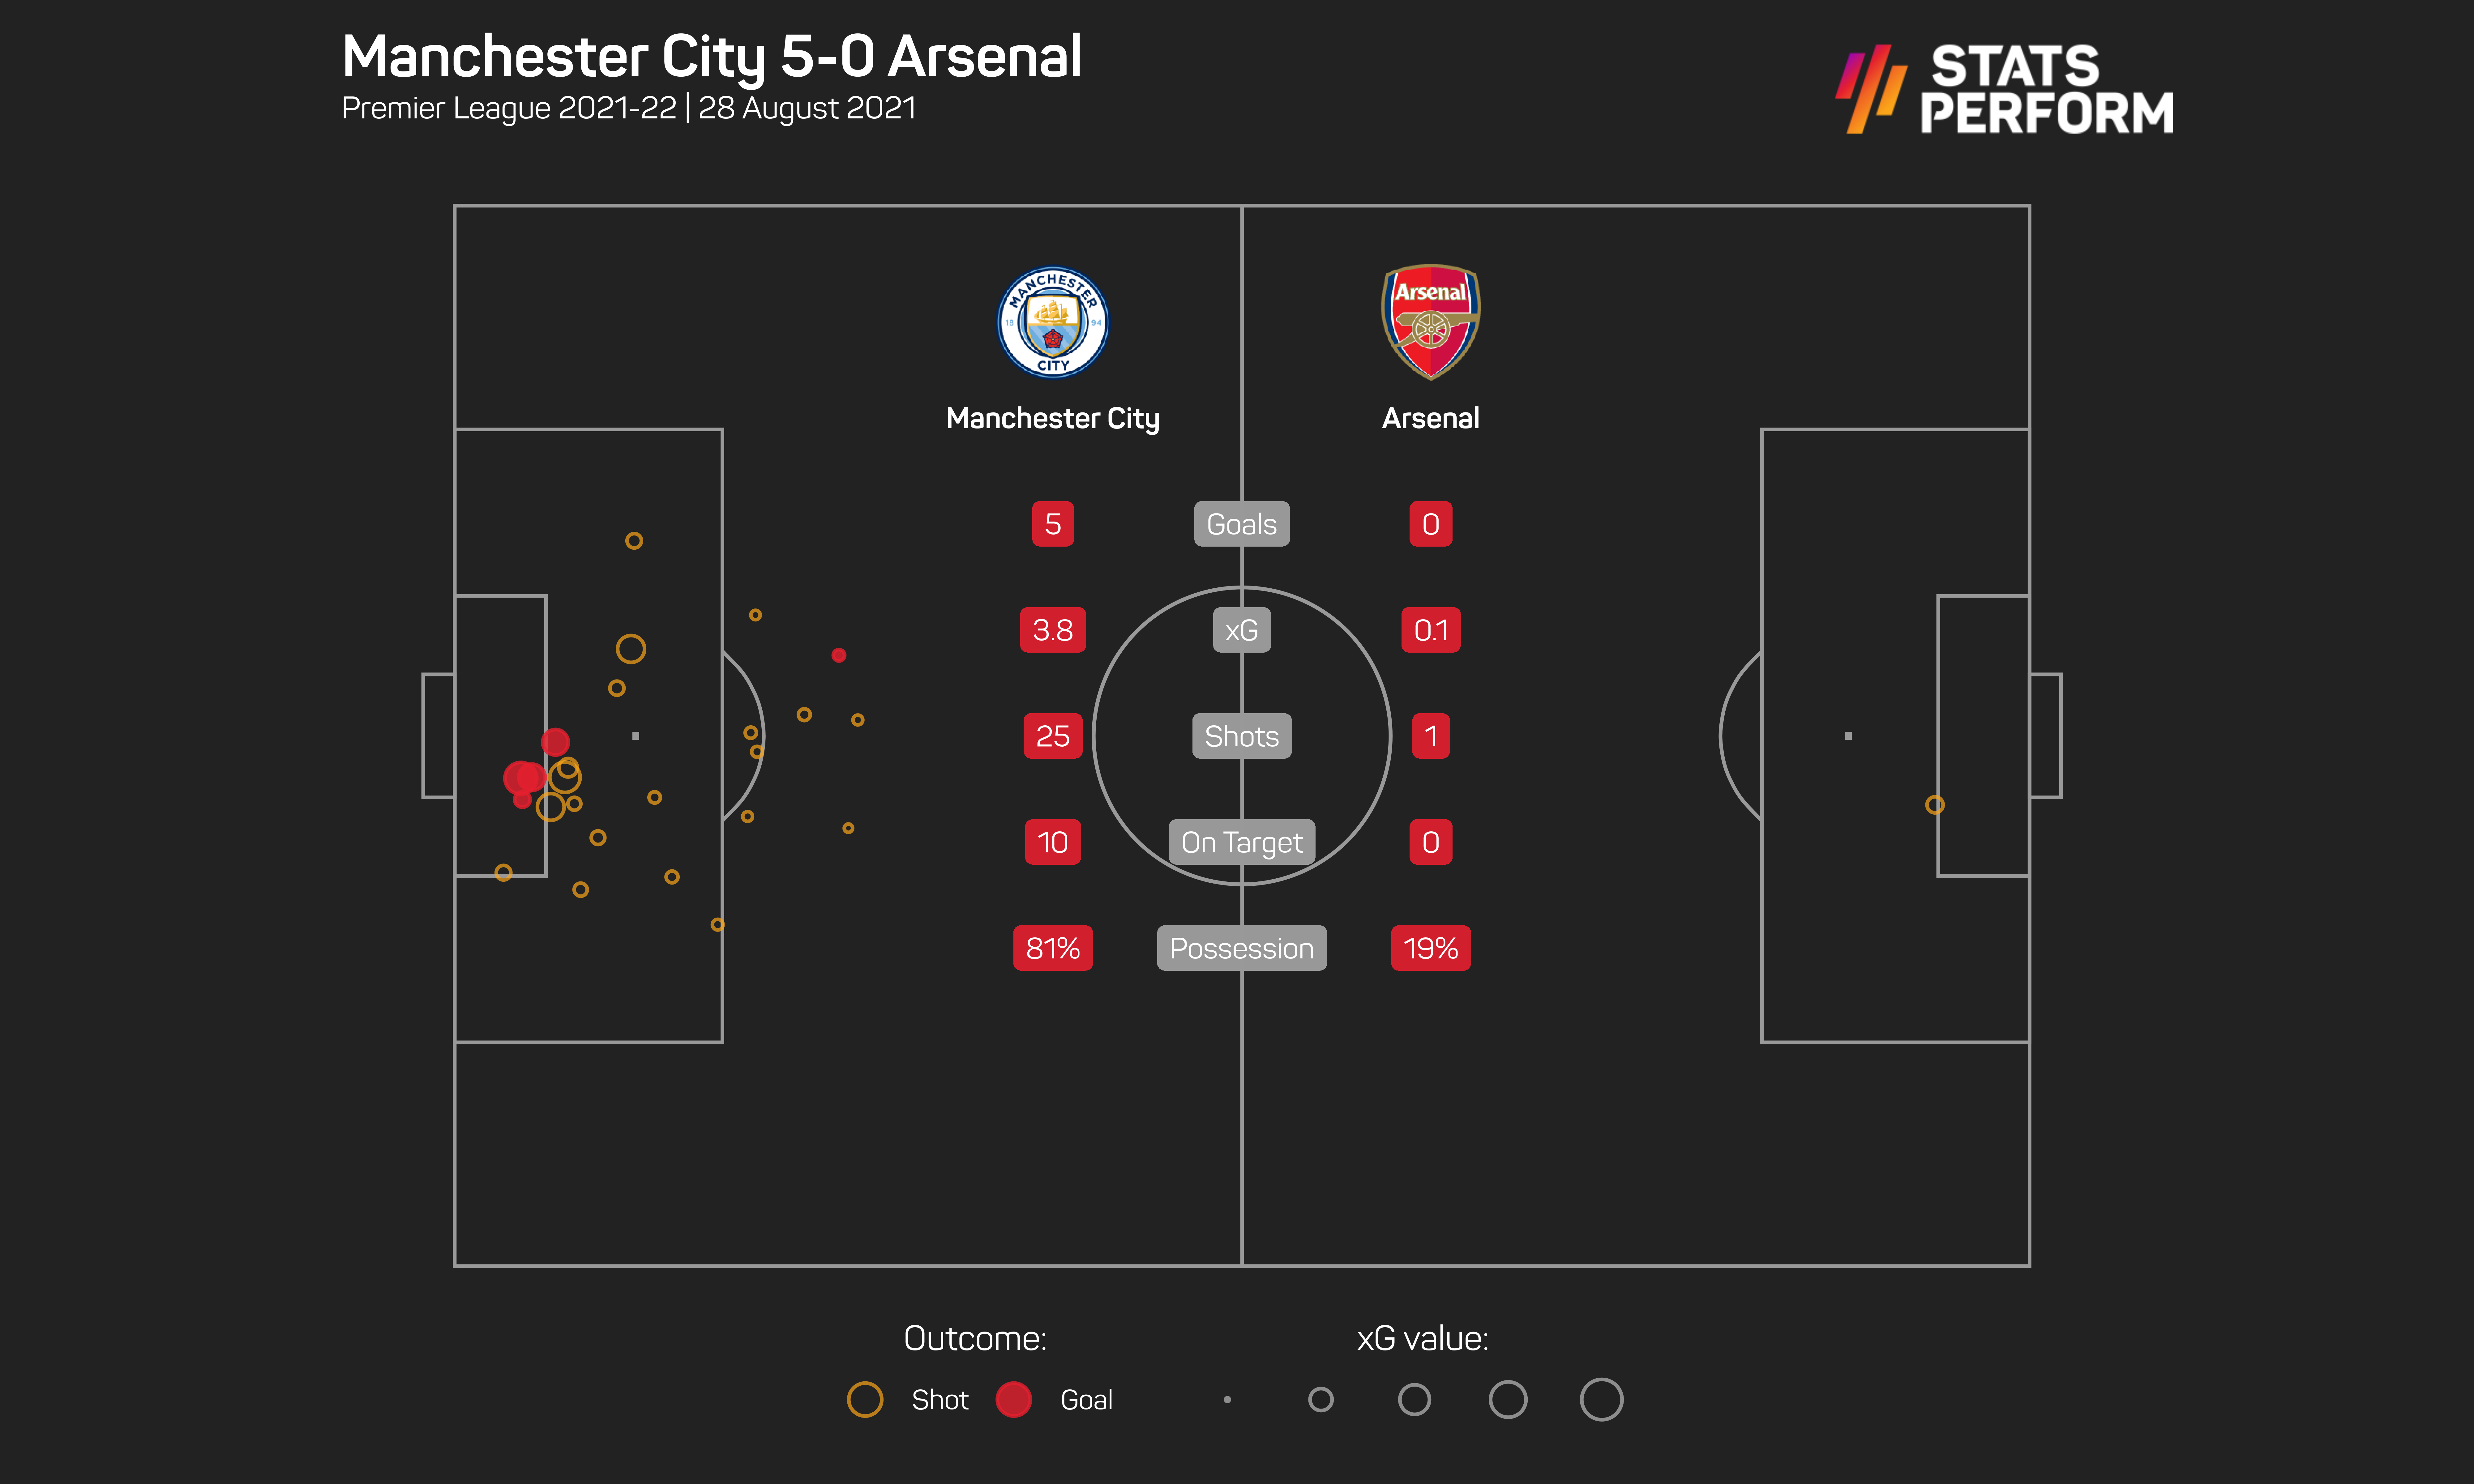 Arsenal's xG value against City was just 0.1